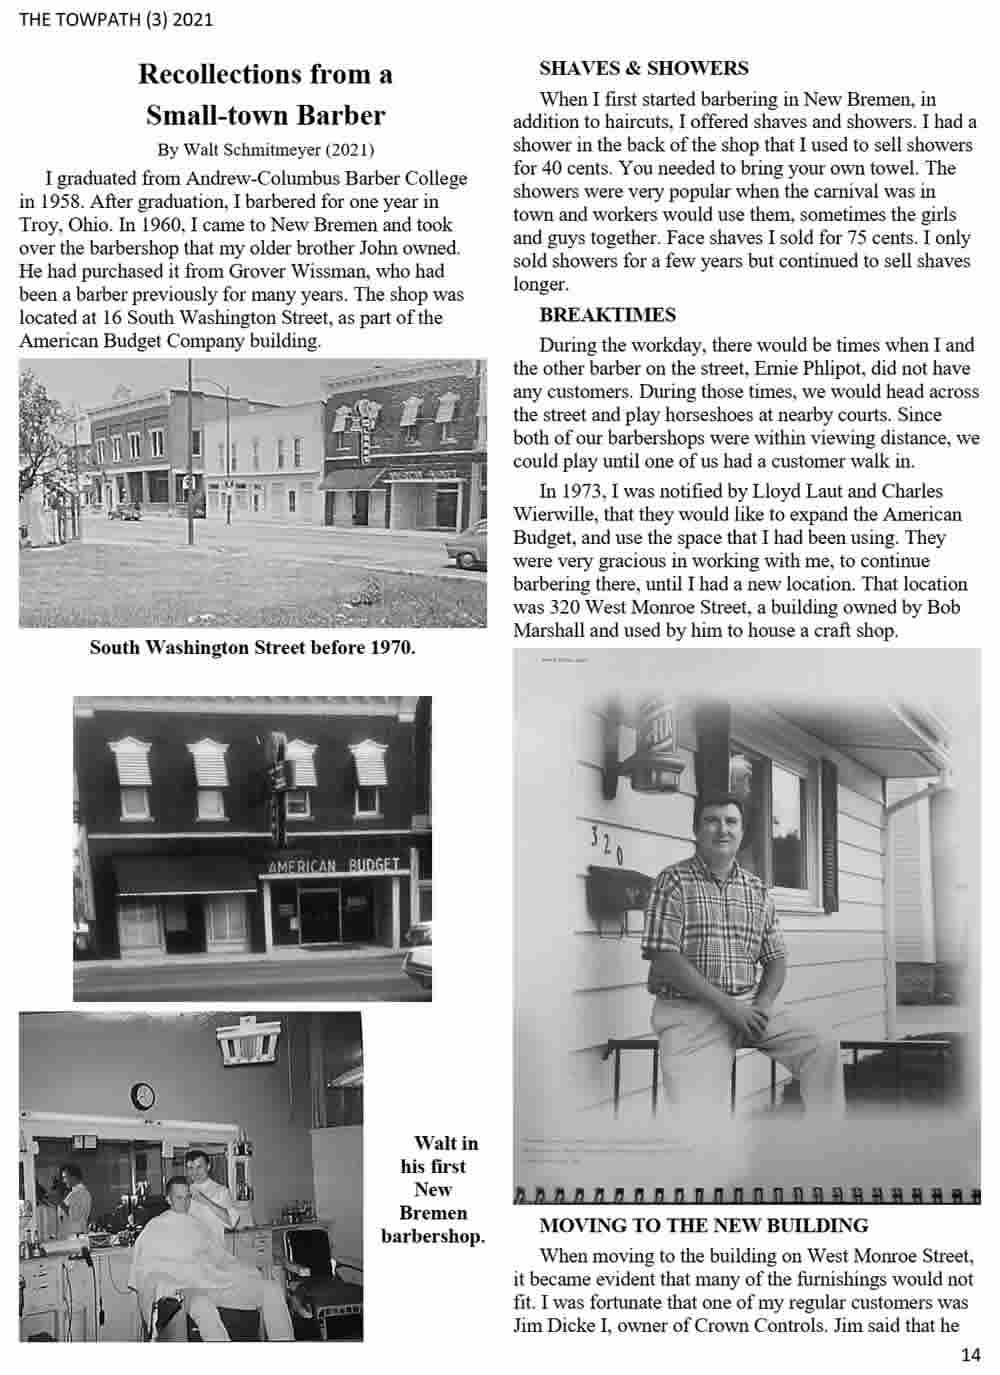 Recollections of a Small Town Barber